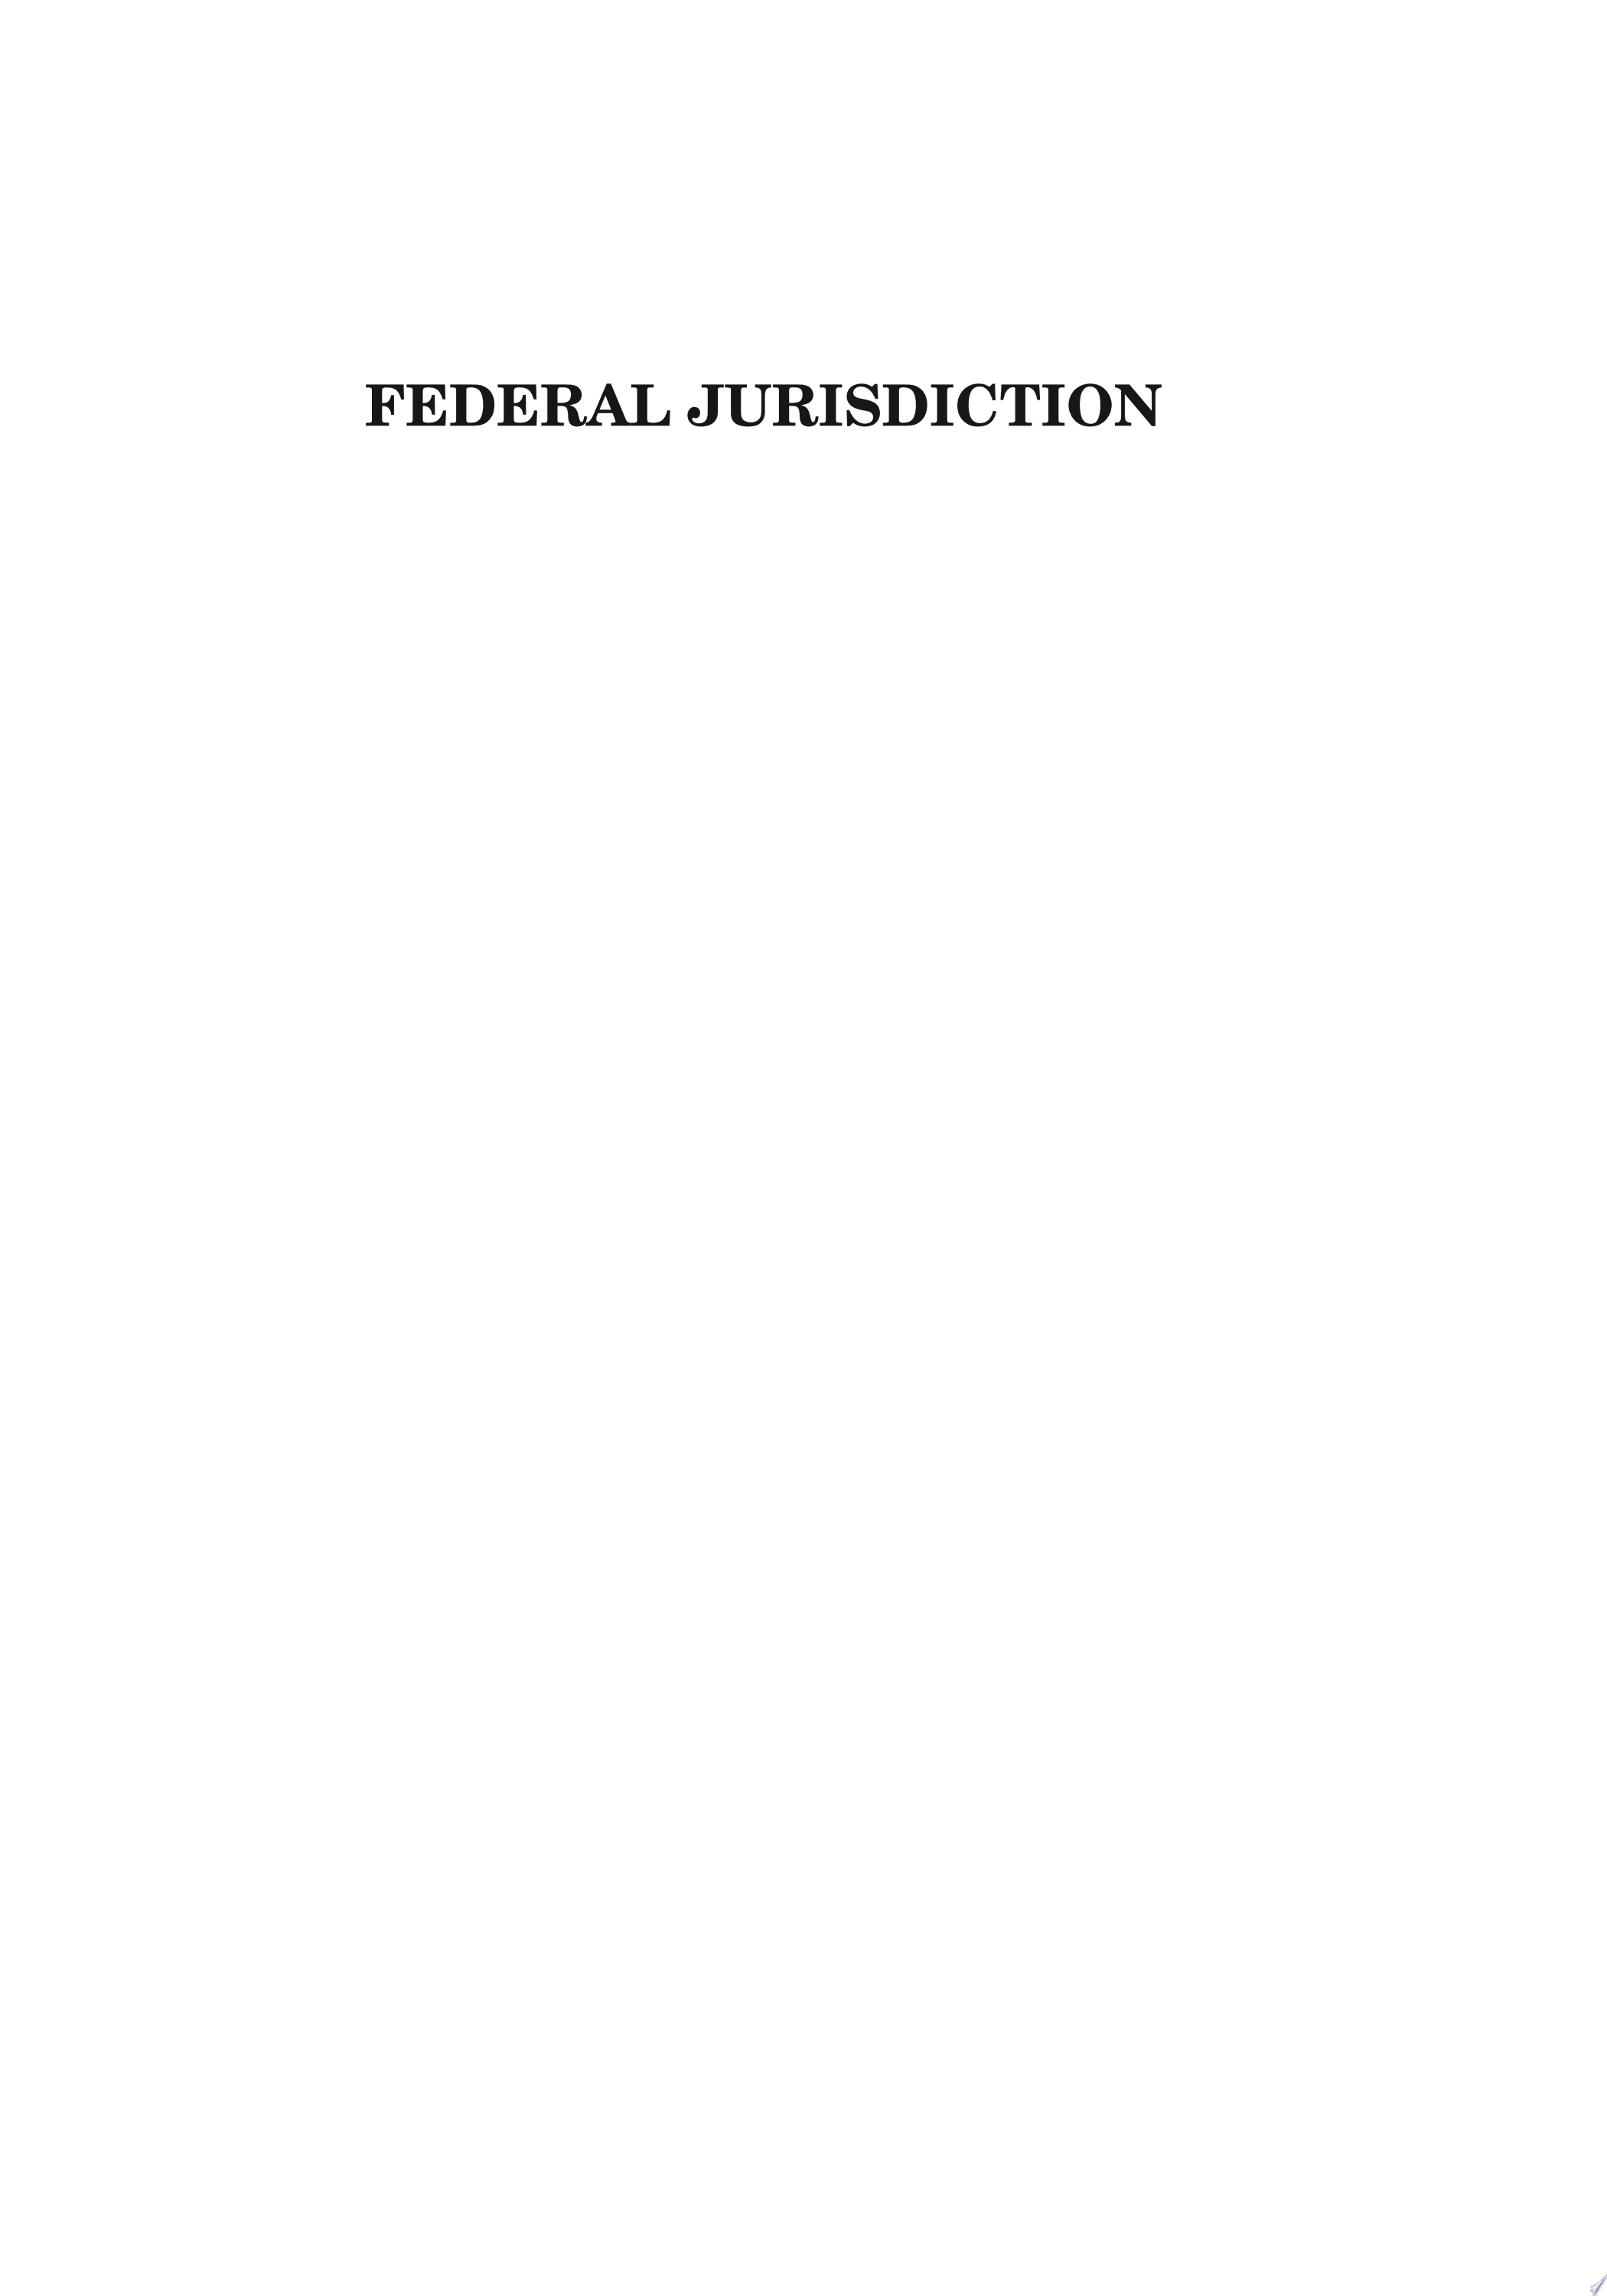 Aspen Student Treatise for Federal Jurisdiction